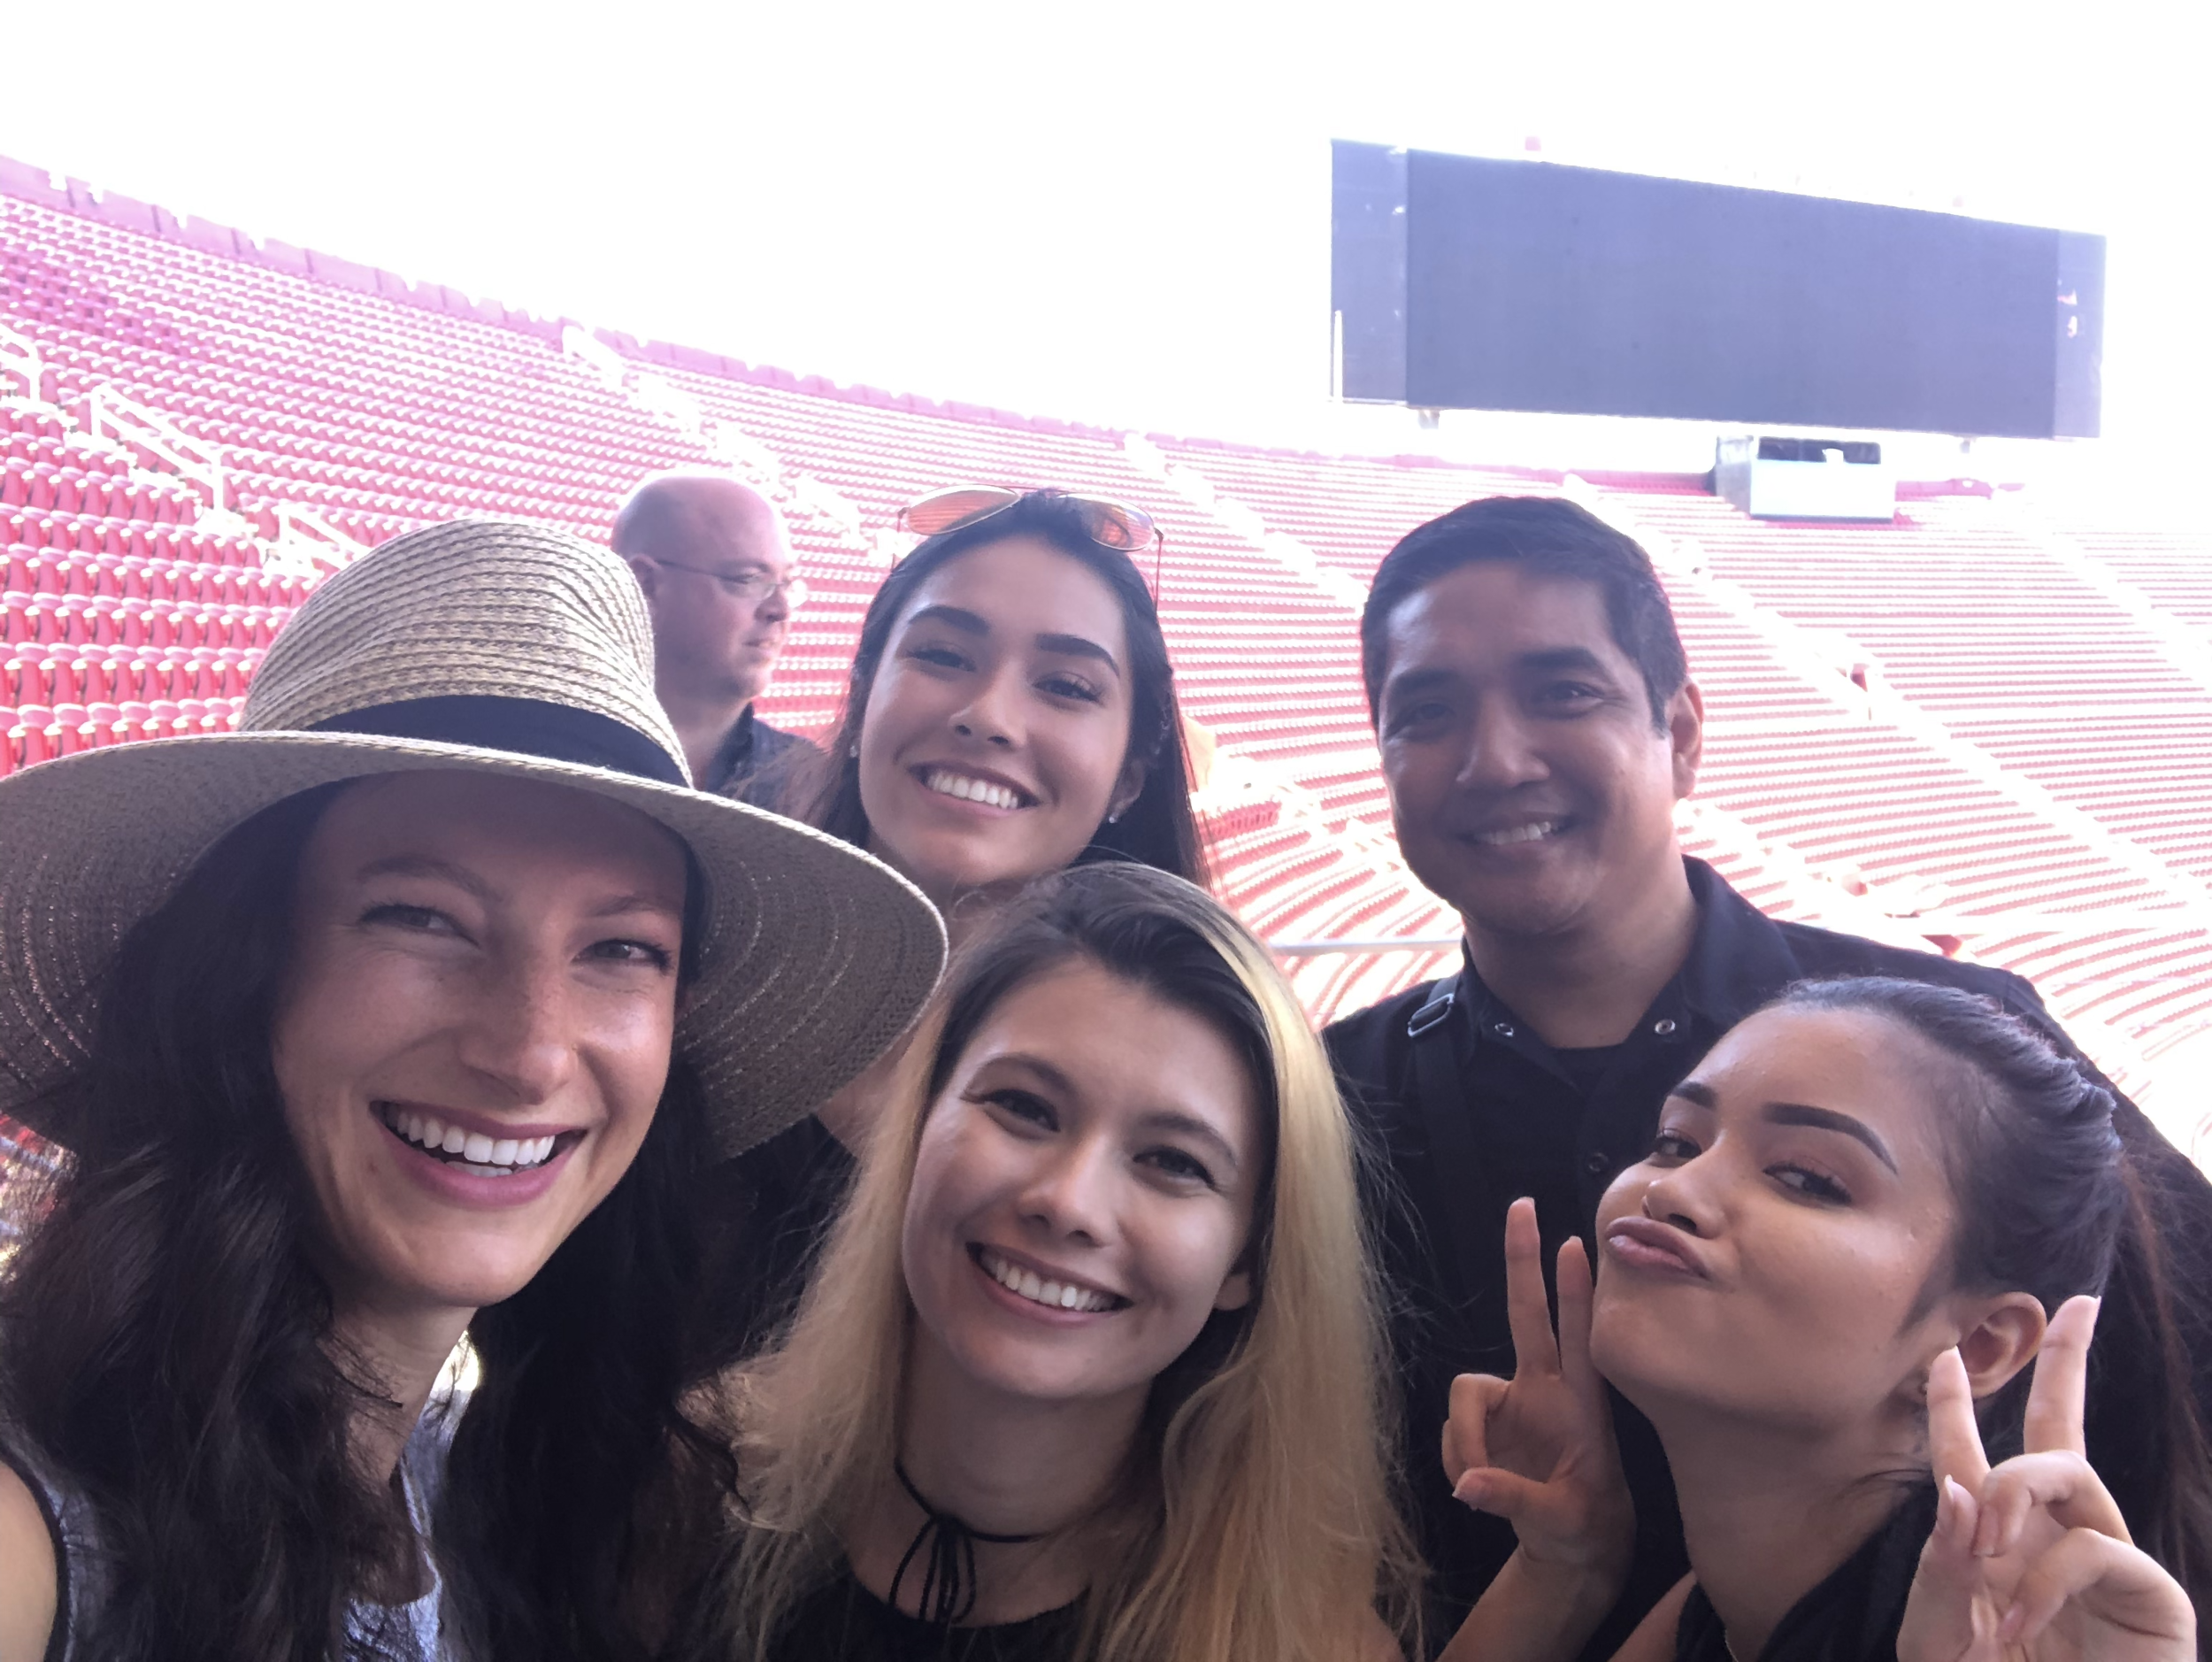 The HINxPC crew on a site visit at the LA Memorial Coliseum, Summer 2019